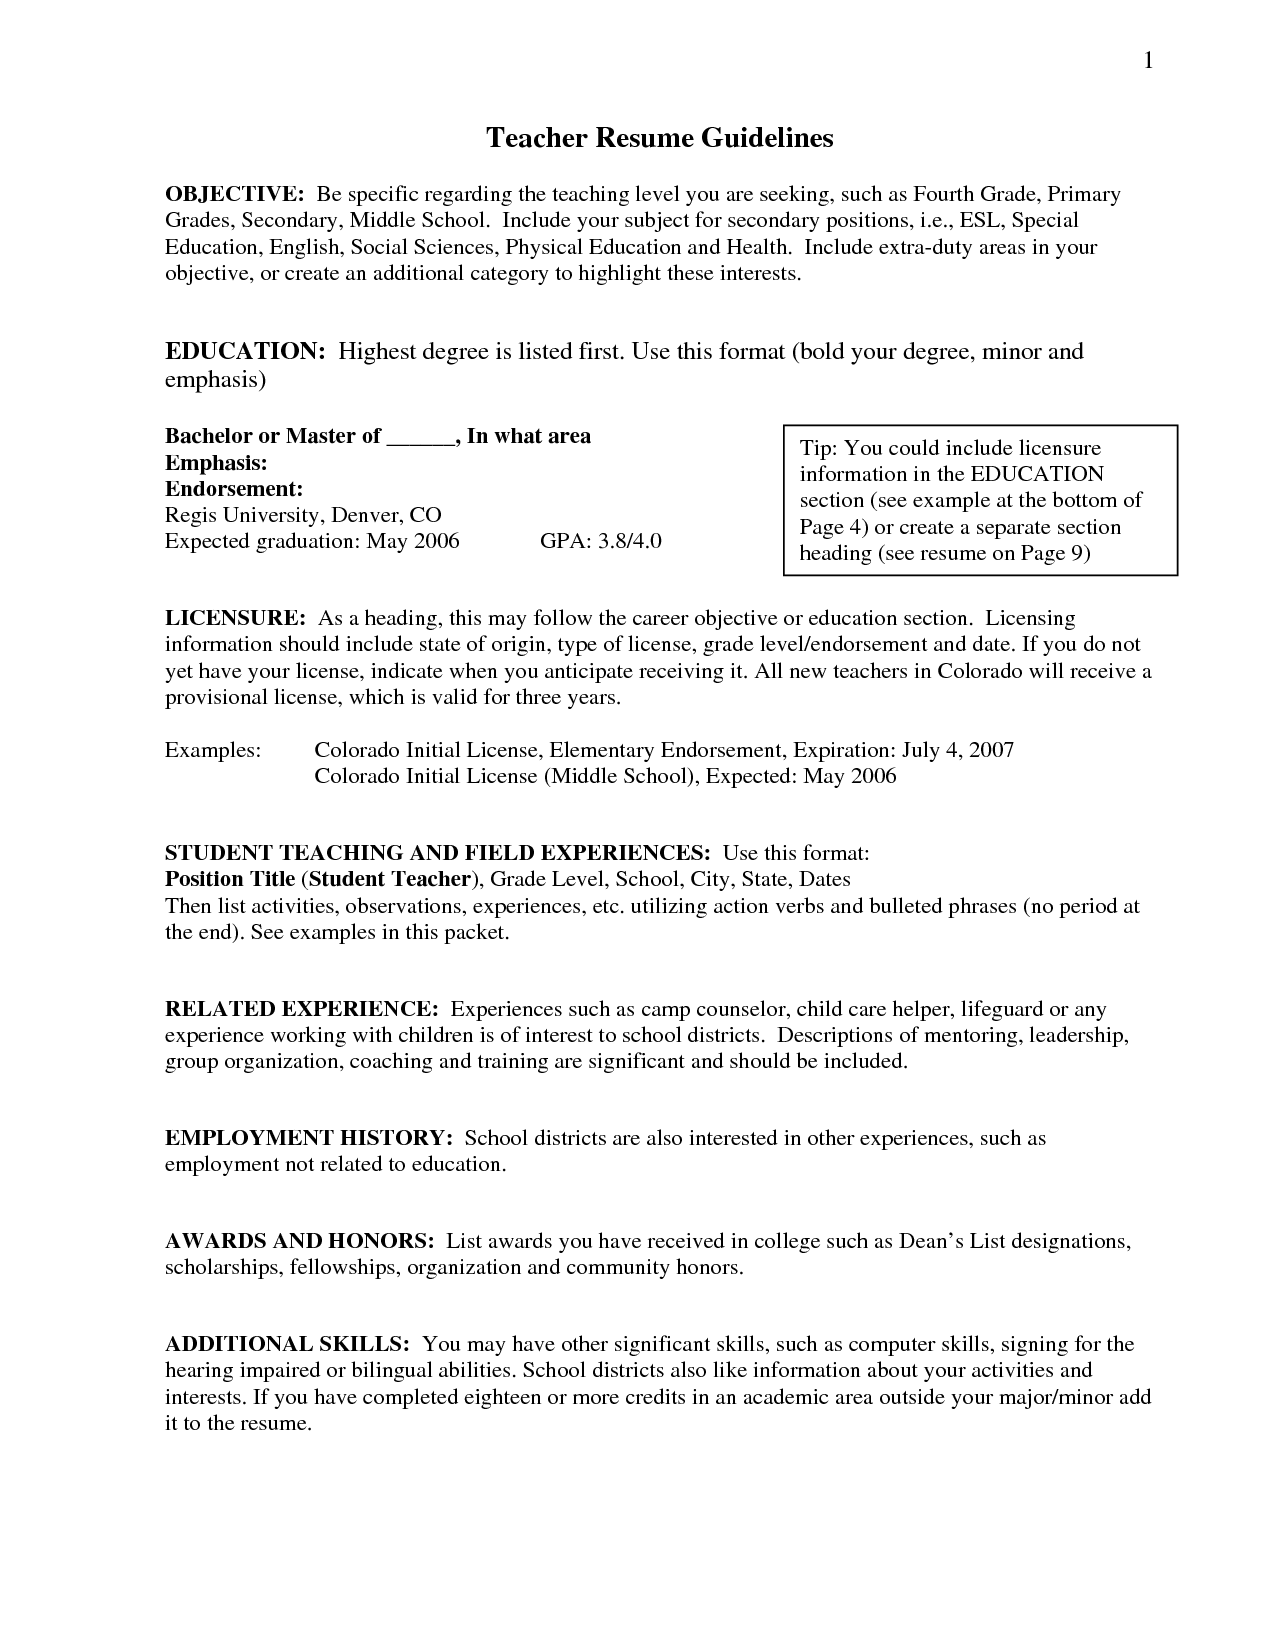 An Objective For A Resume Pinjobresume On Resume Career Termplate Free  Pinterest